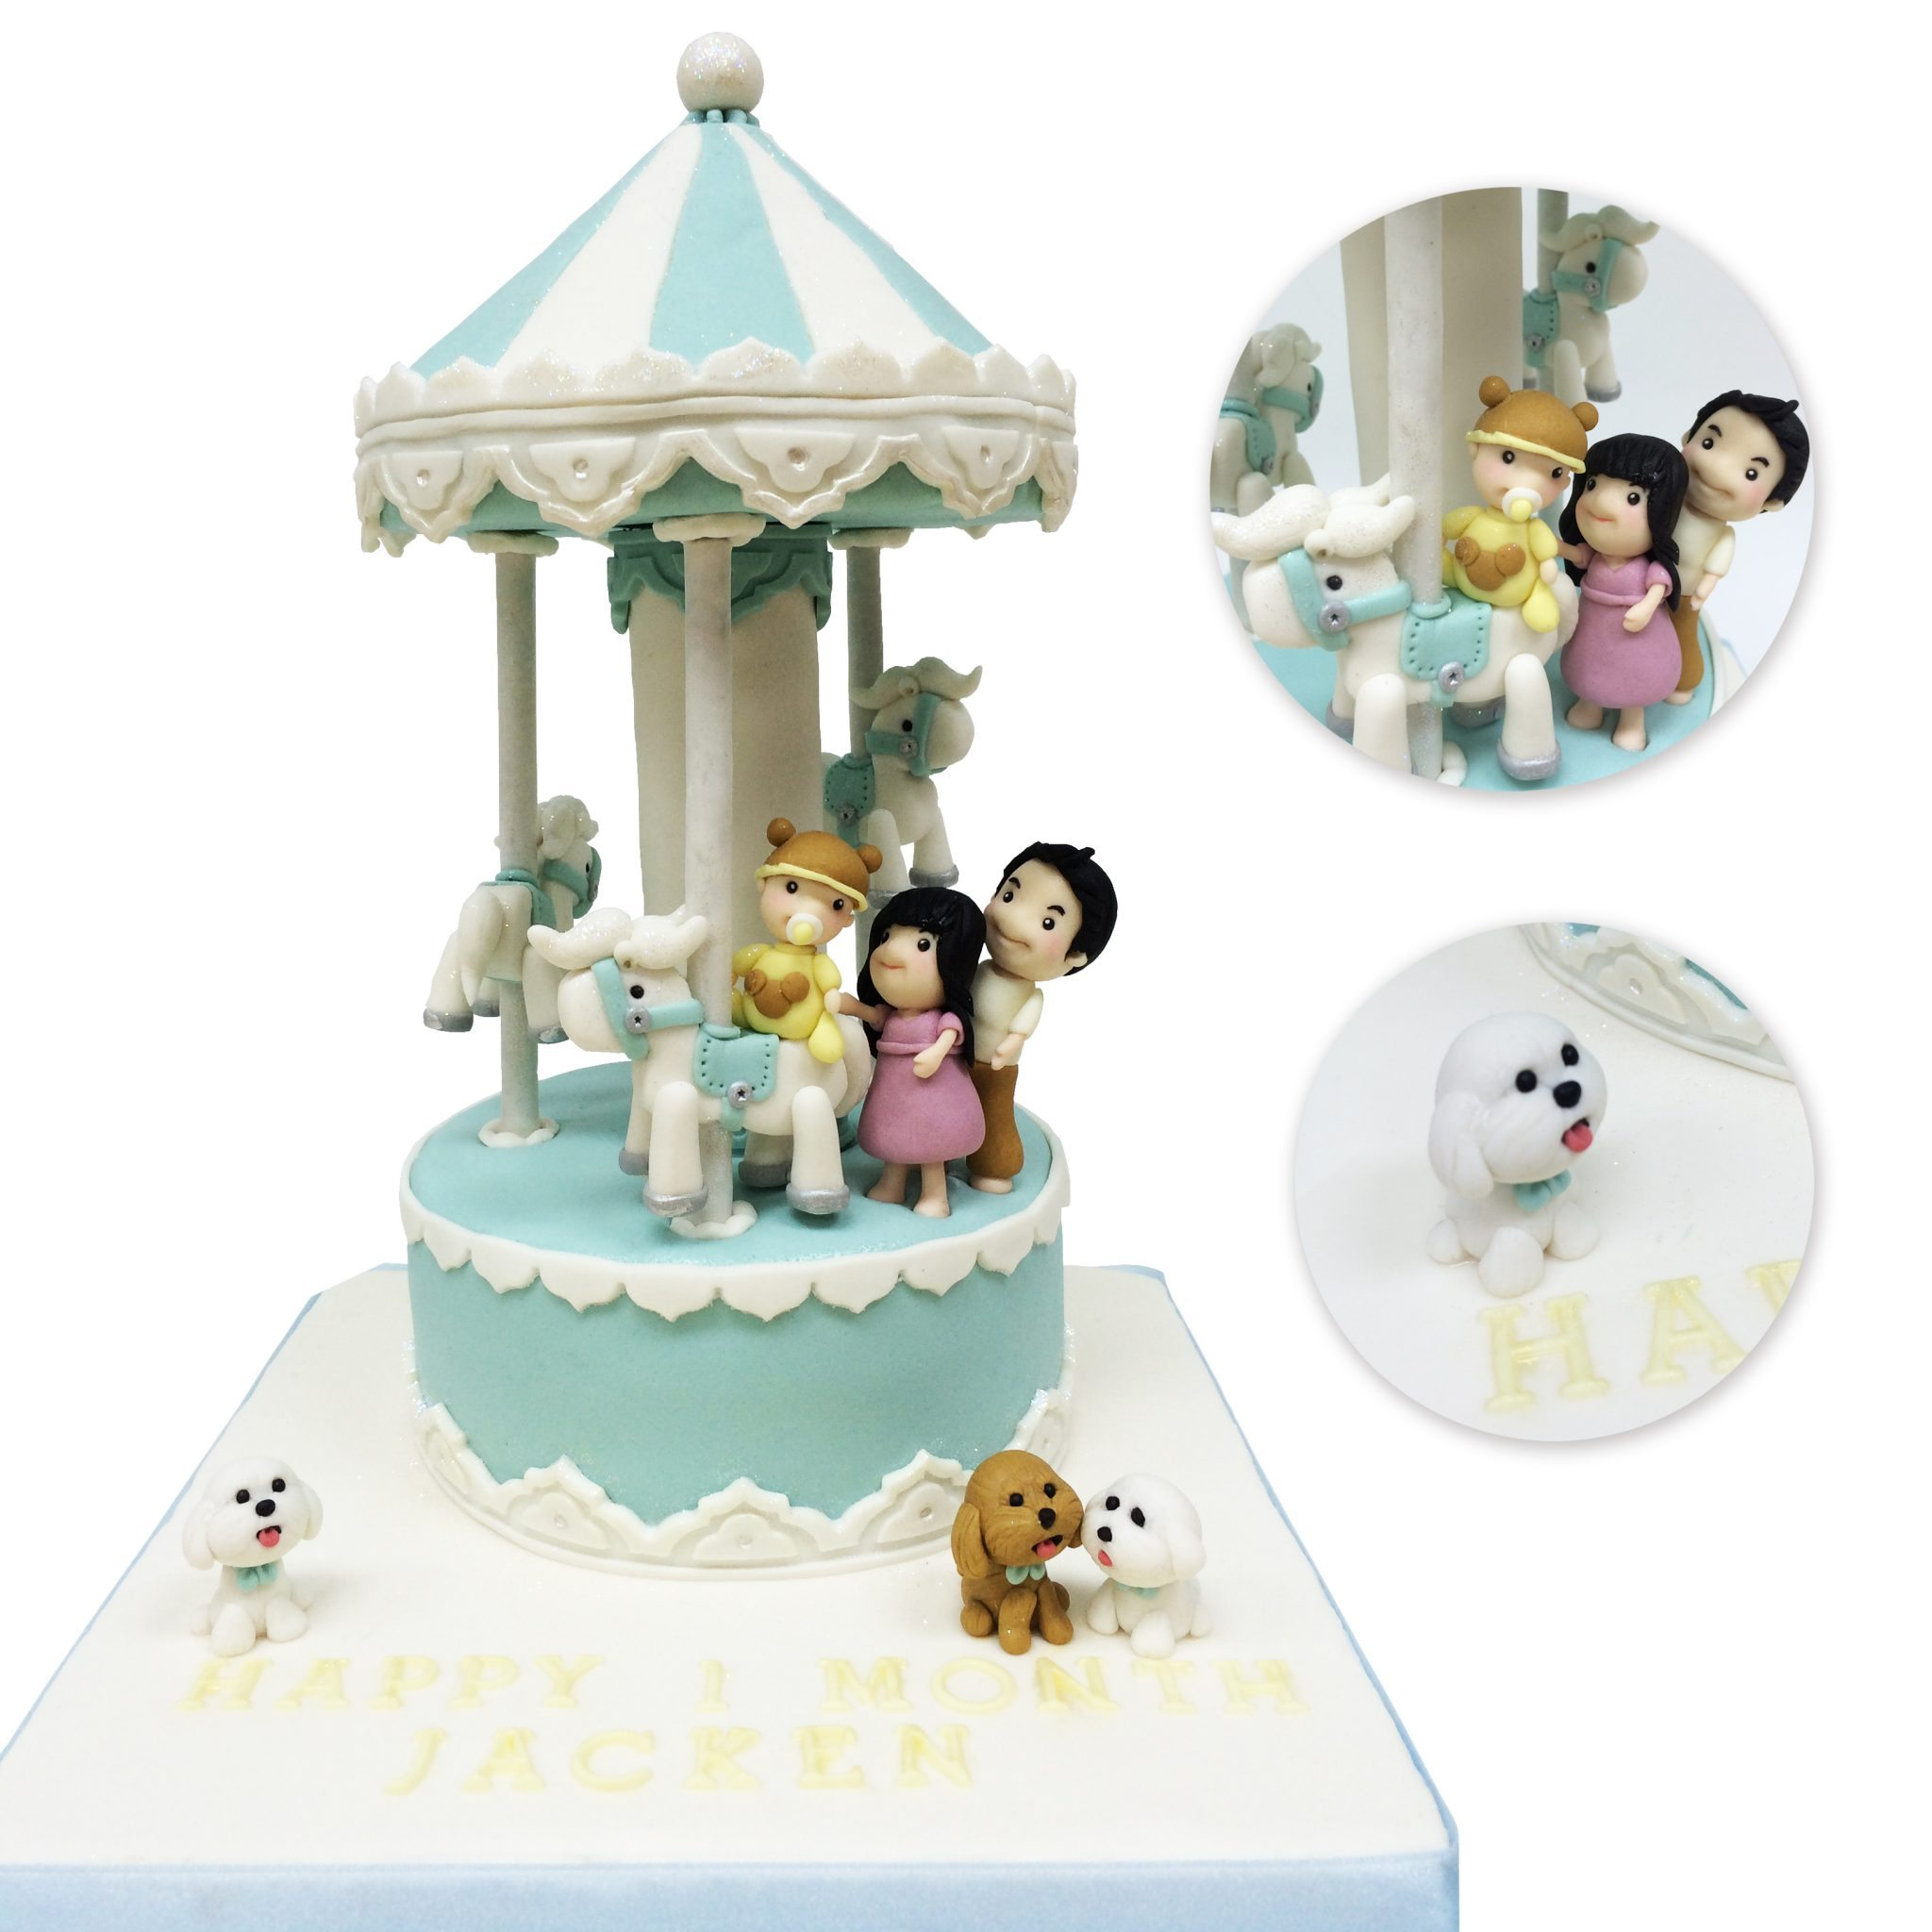 Carousel Cake by BRICK LANE Sweets